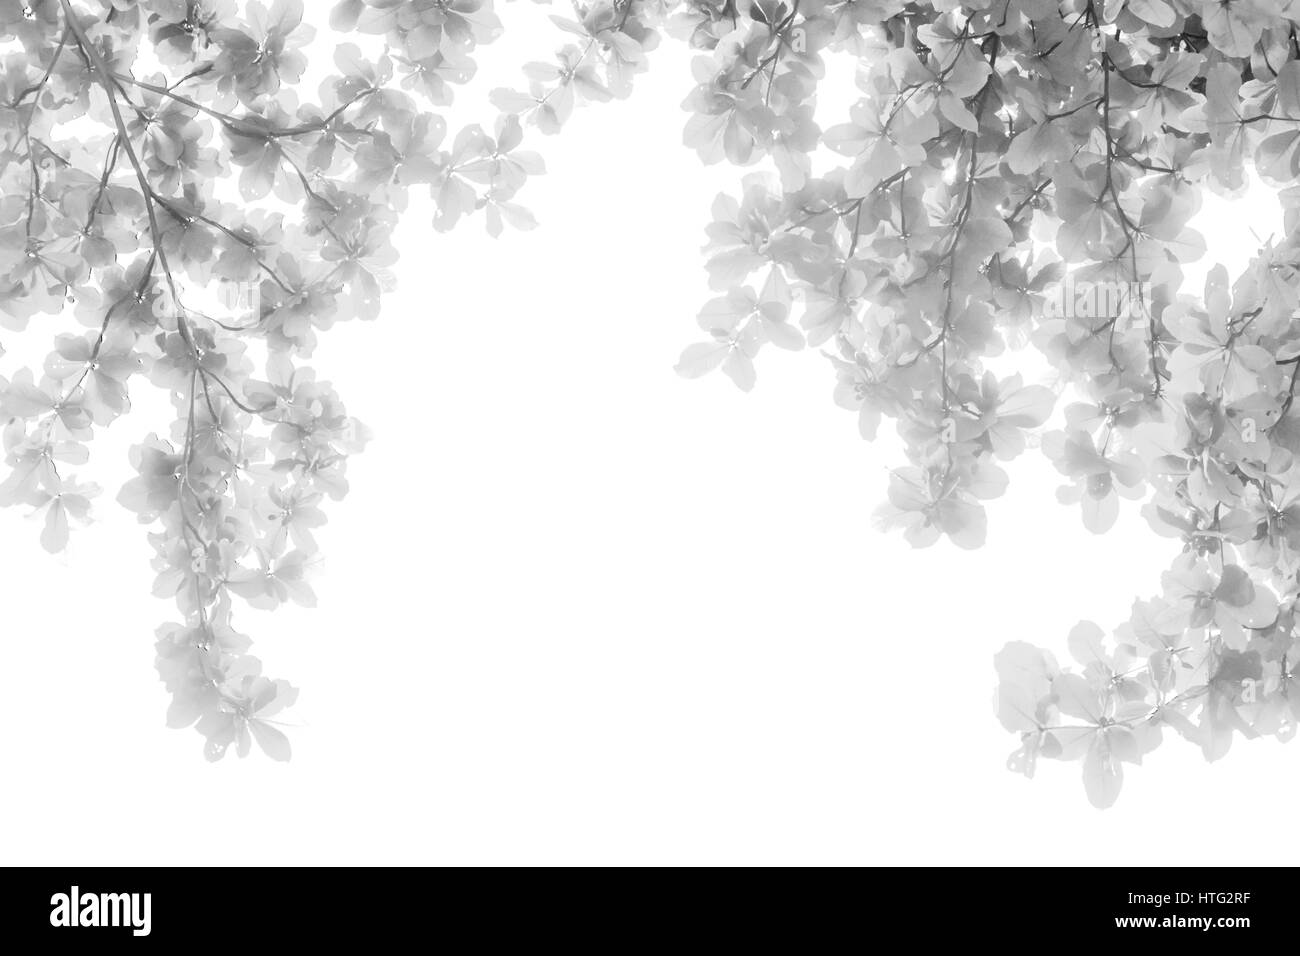 black and white infrared of tree leaves in isolated white